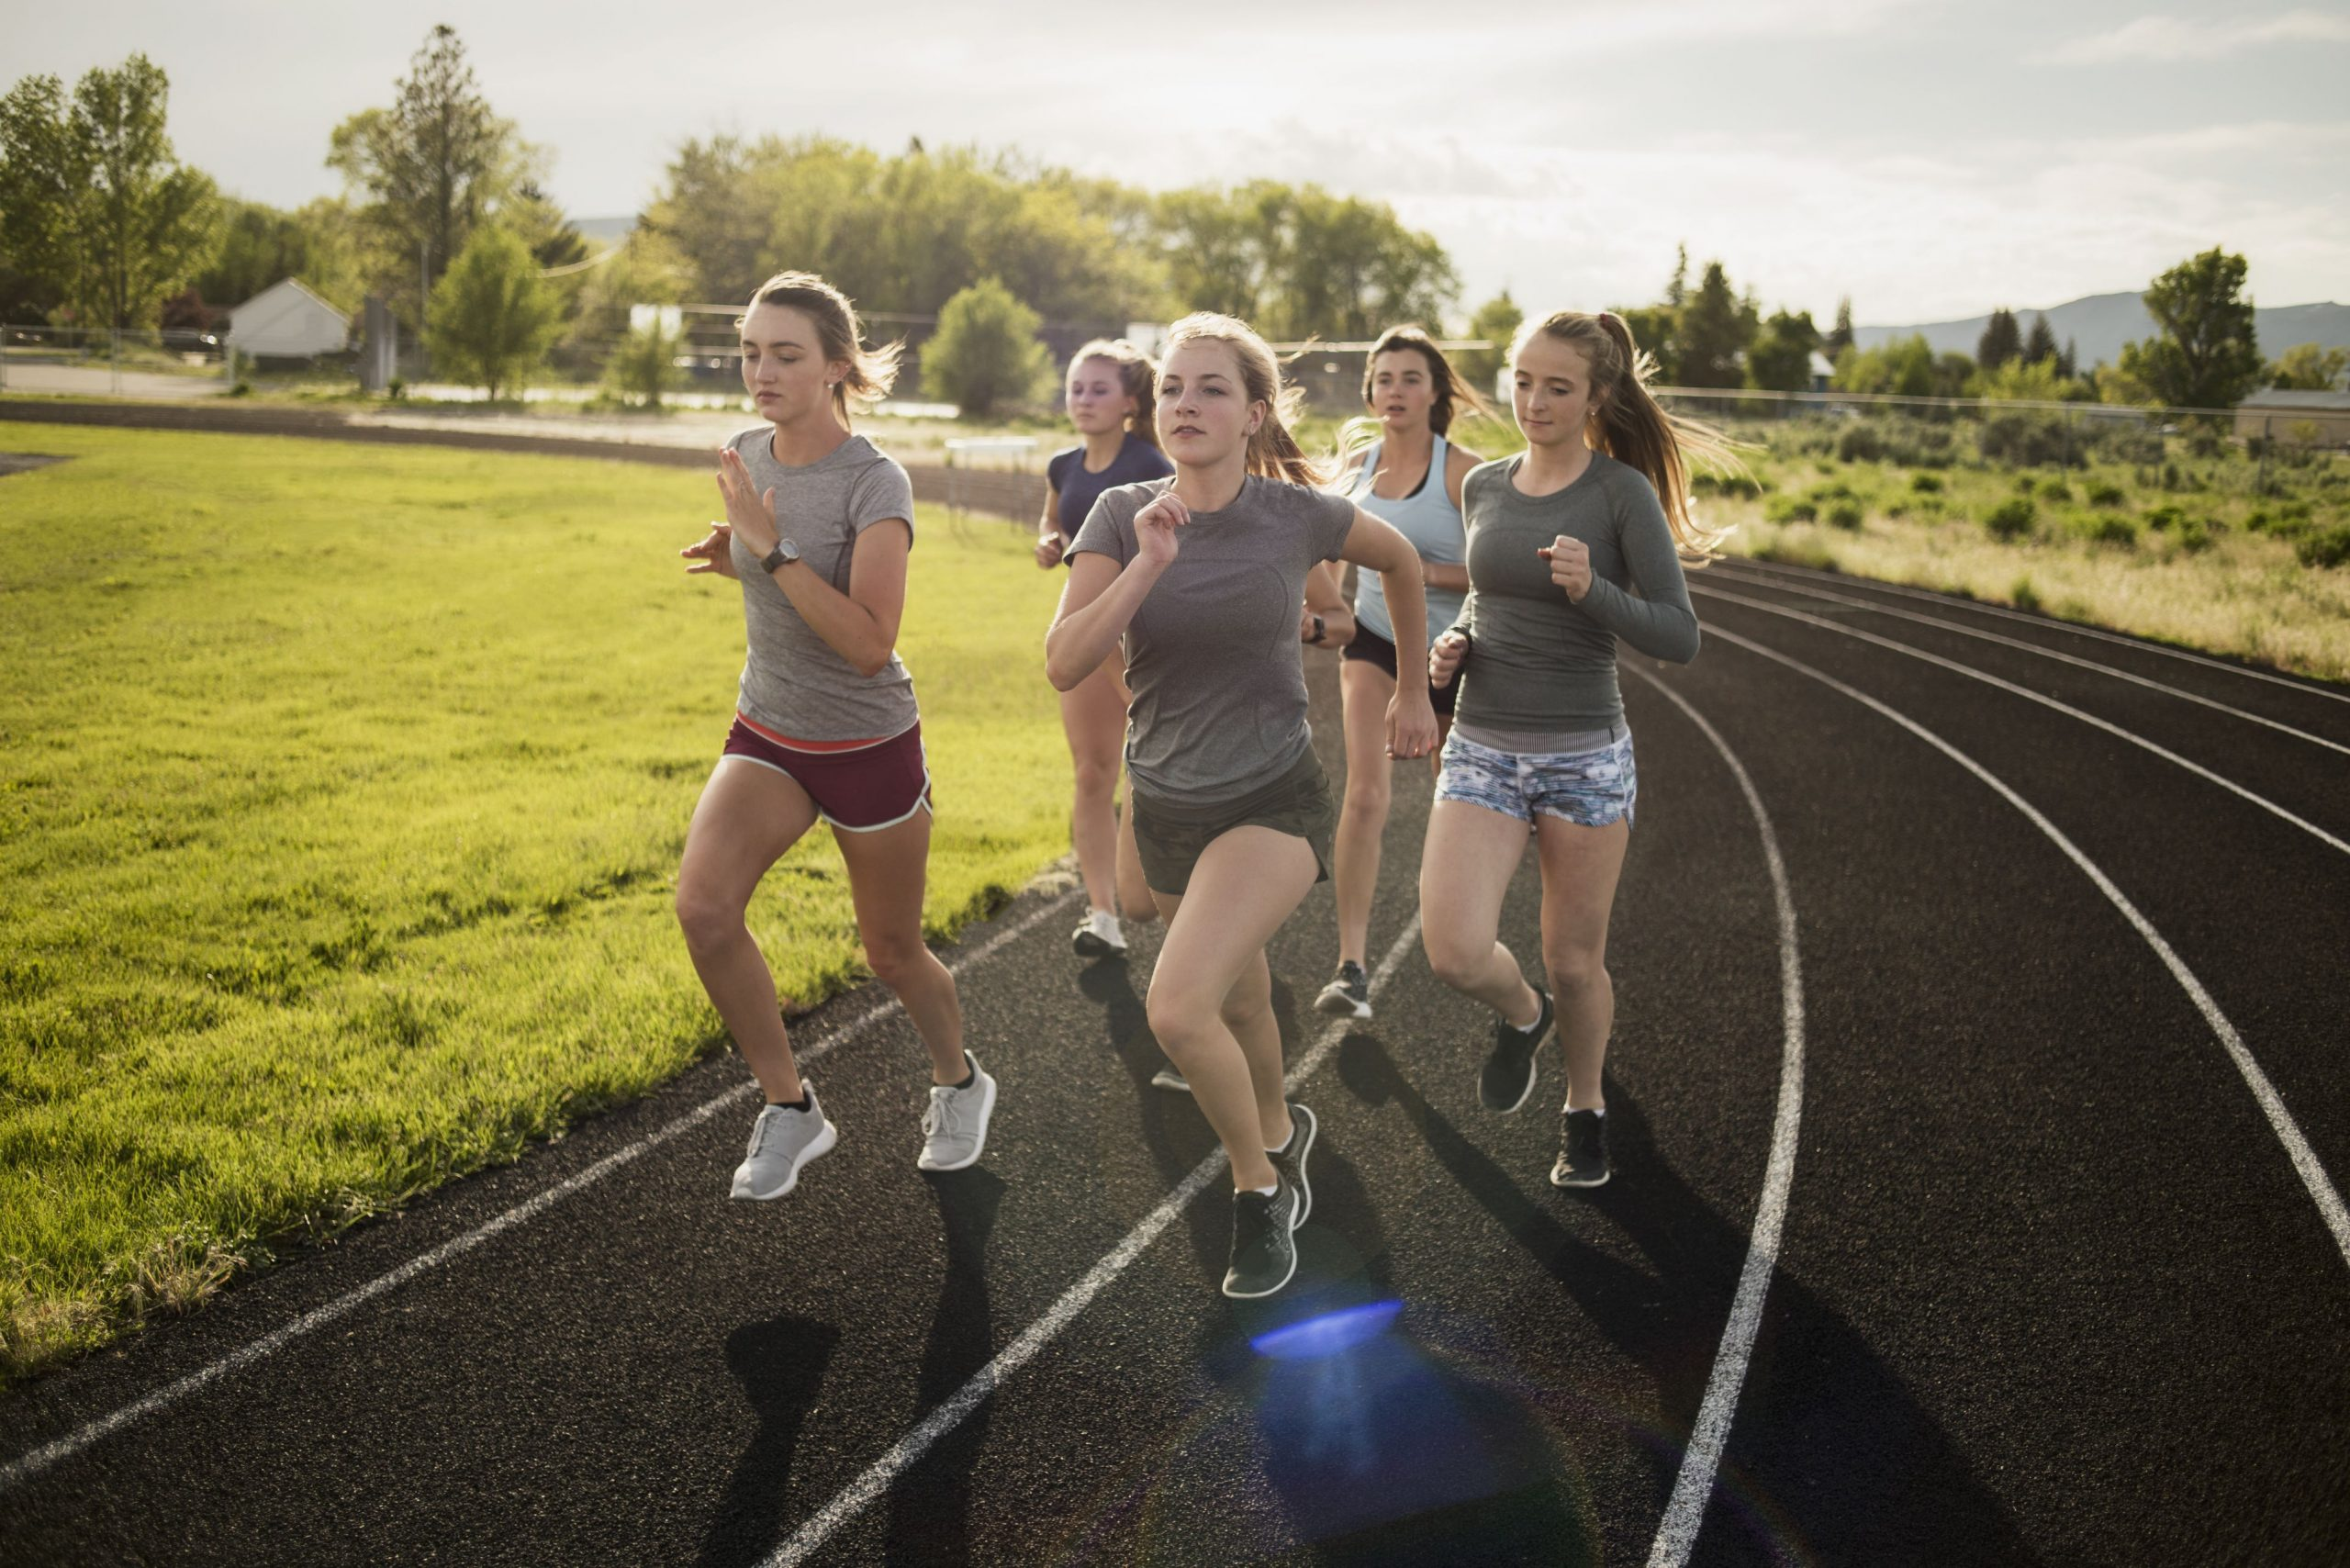 Does playing sports as a child and through adolescence make you a fitter adult?